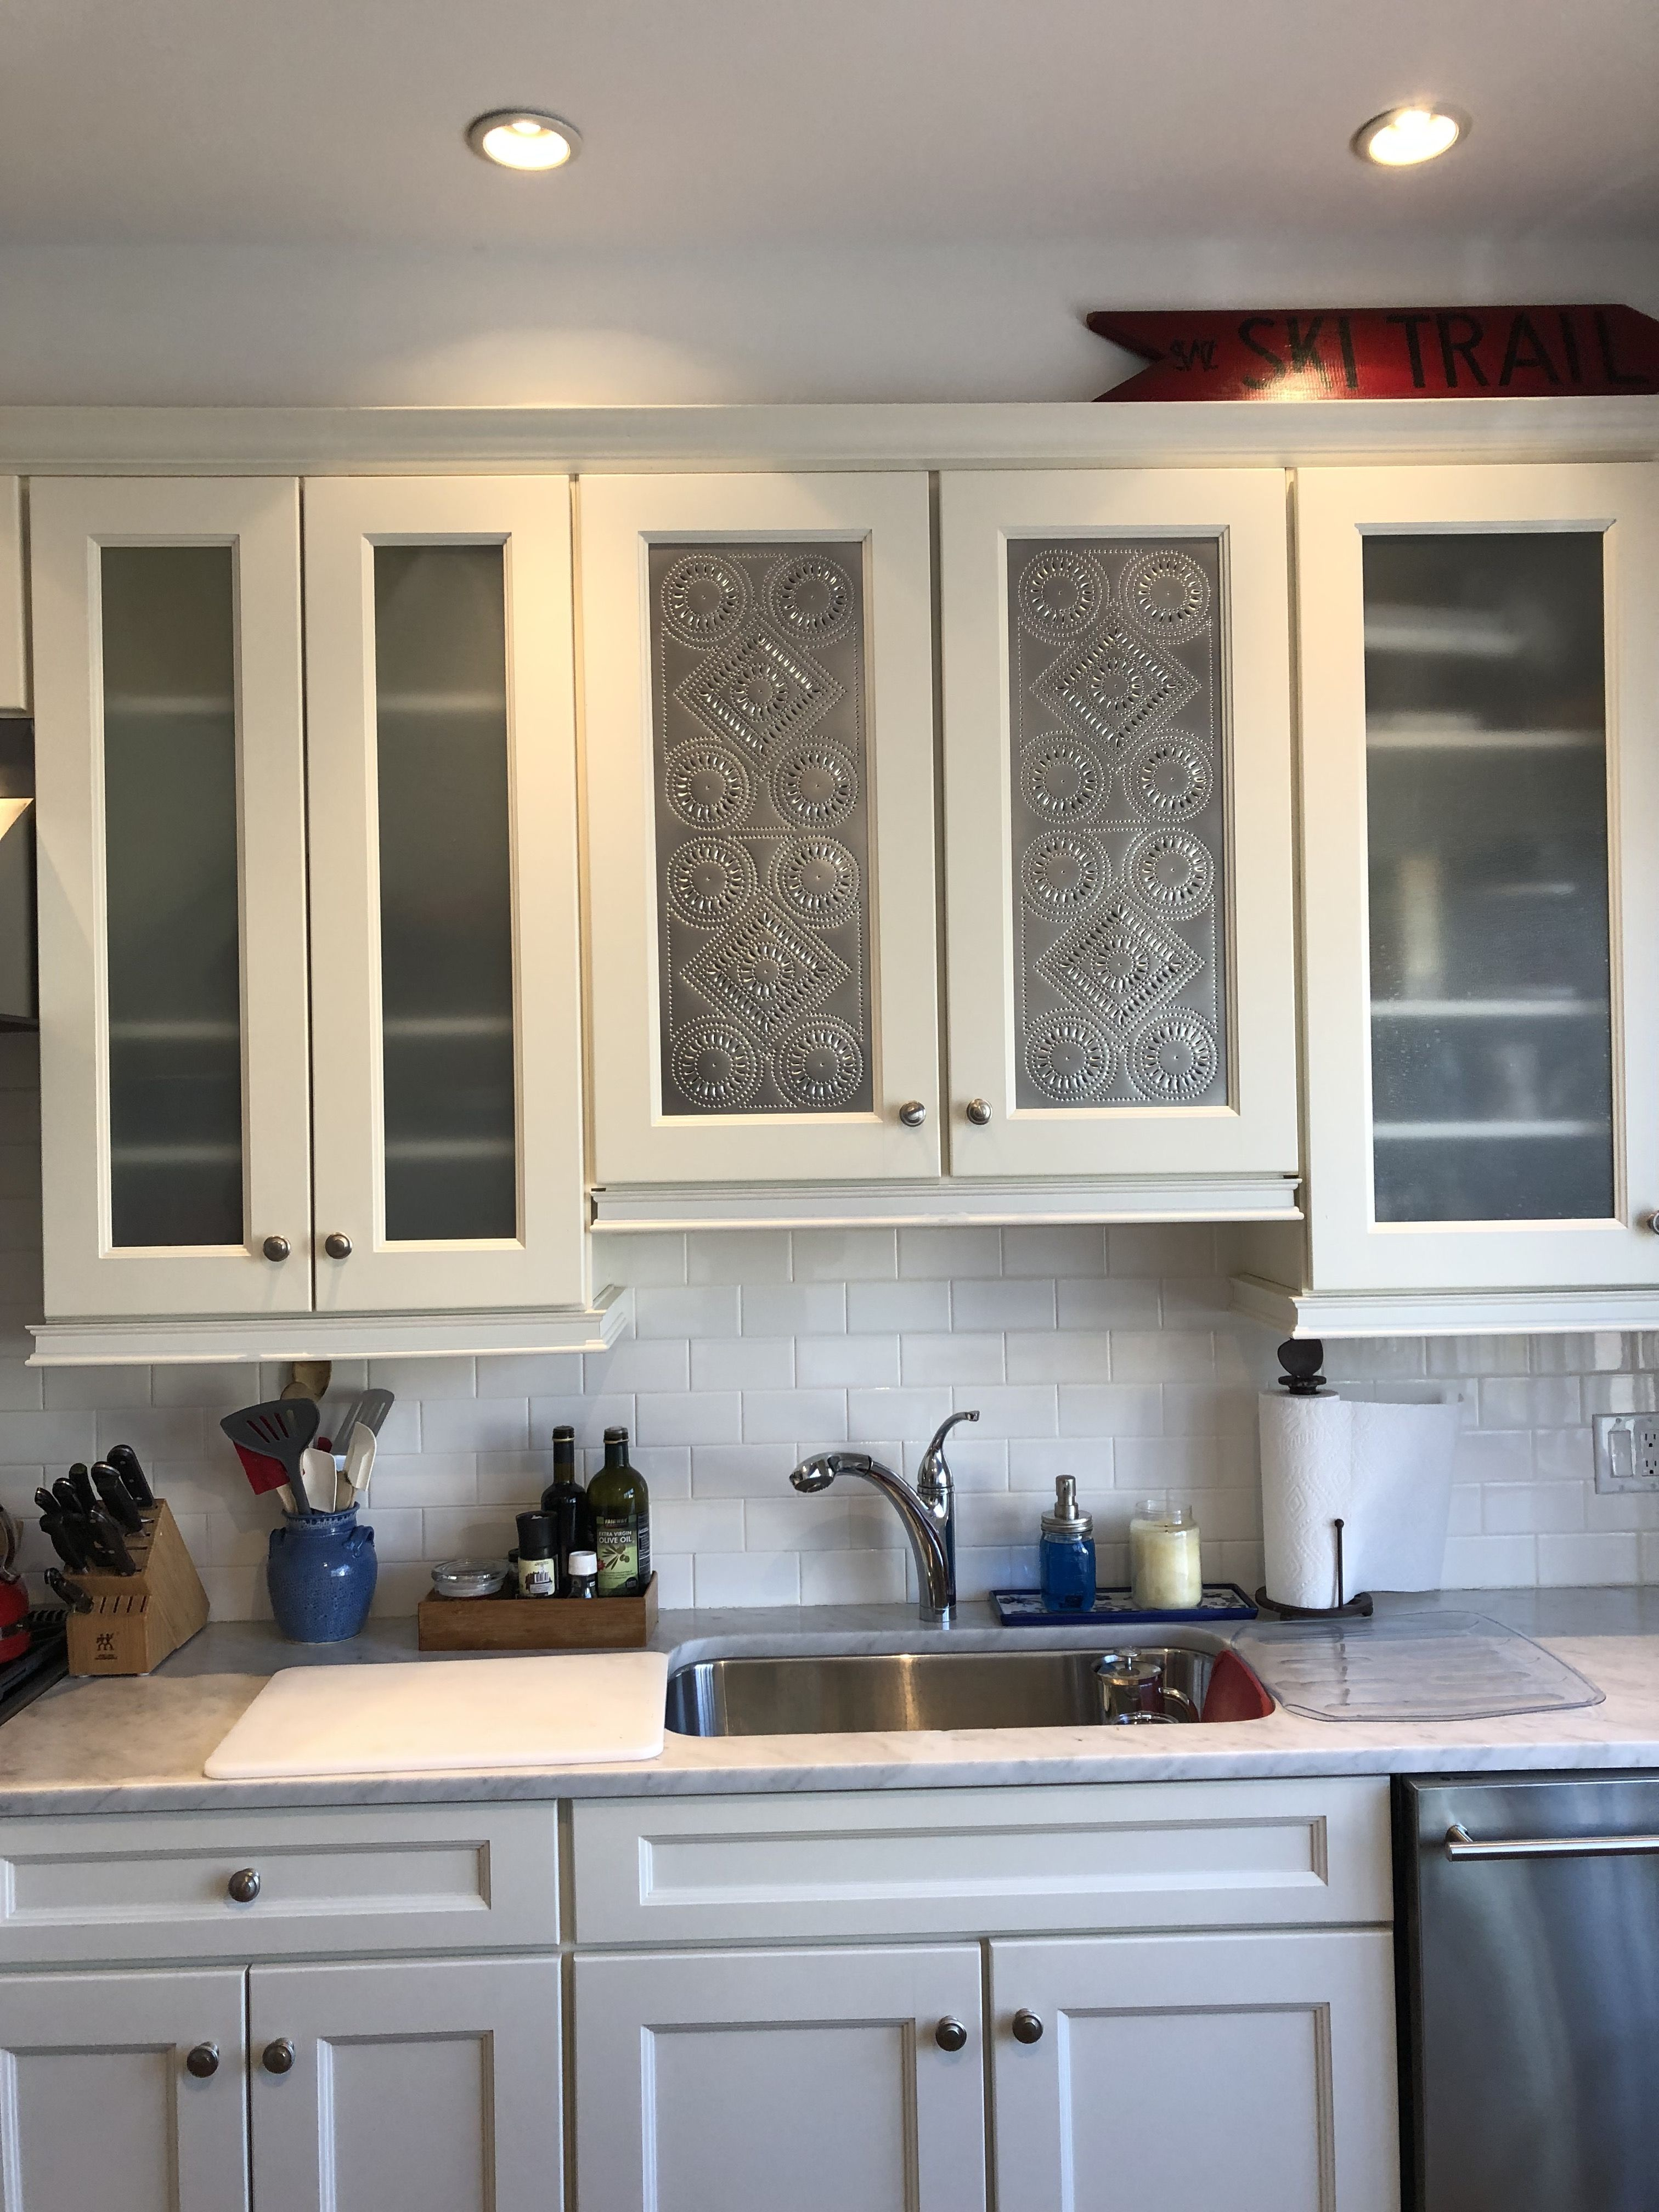 Moving From Builder S Spec To Farmhouse The Builder S Kitchen Cabinets After The Dyi Project Of Covering The Glass With Pi Kitchen Cabinets Kitchen Tin Panel